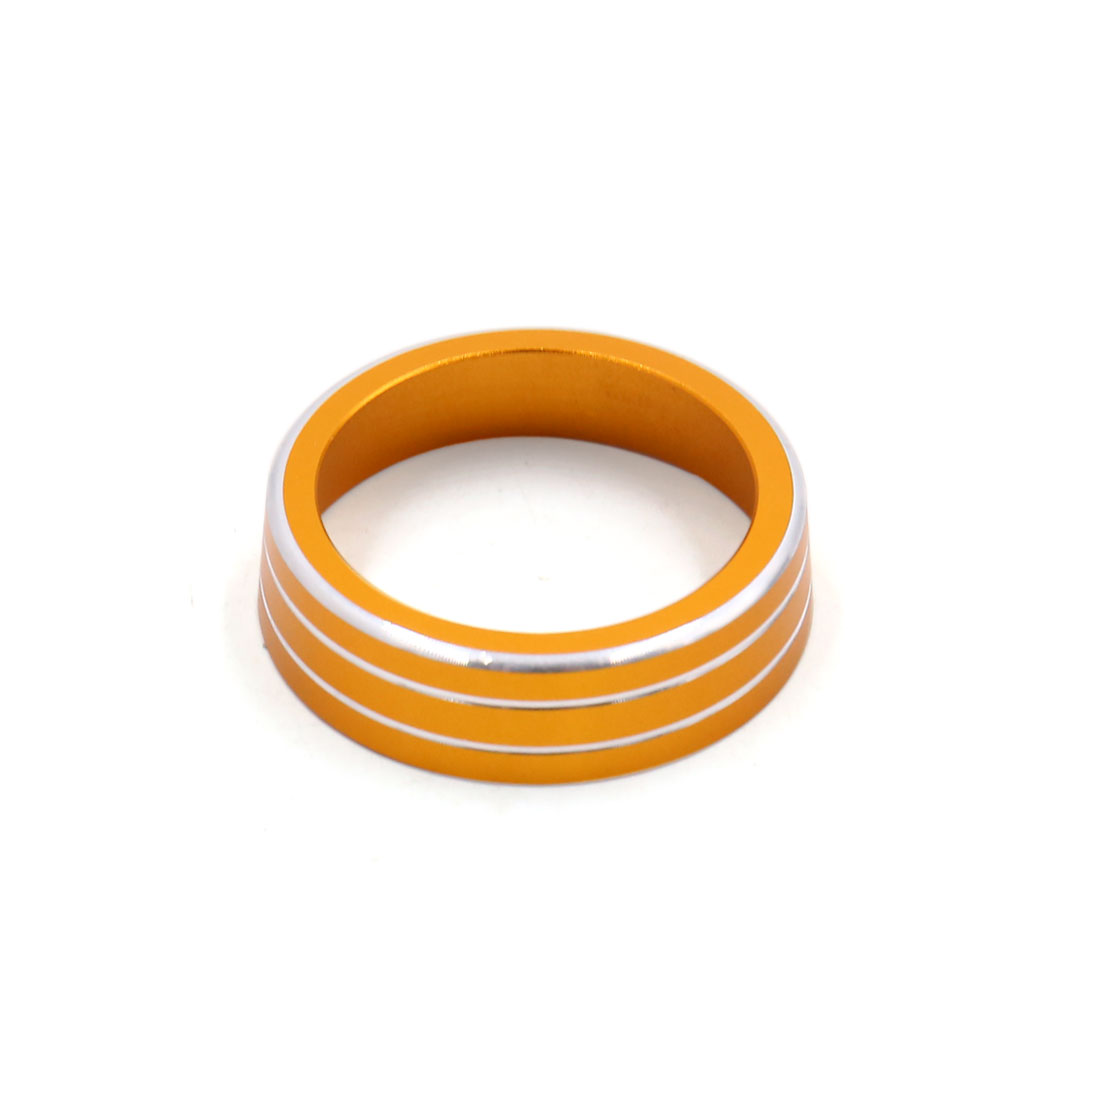 AC Climate Volume Control Knob Decoration Ring Cover for VW Lamando Gold Tone